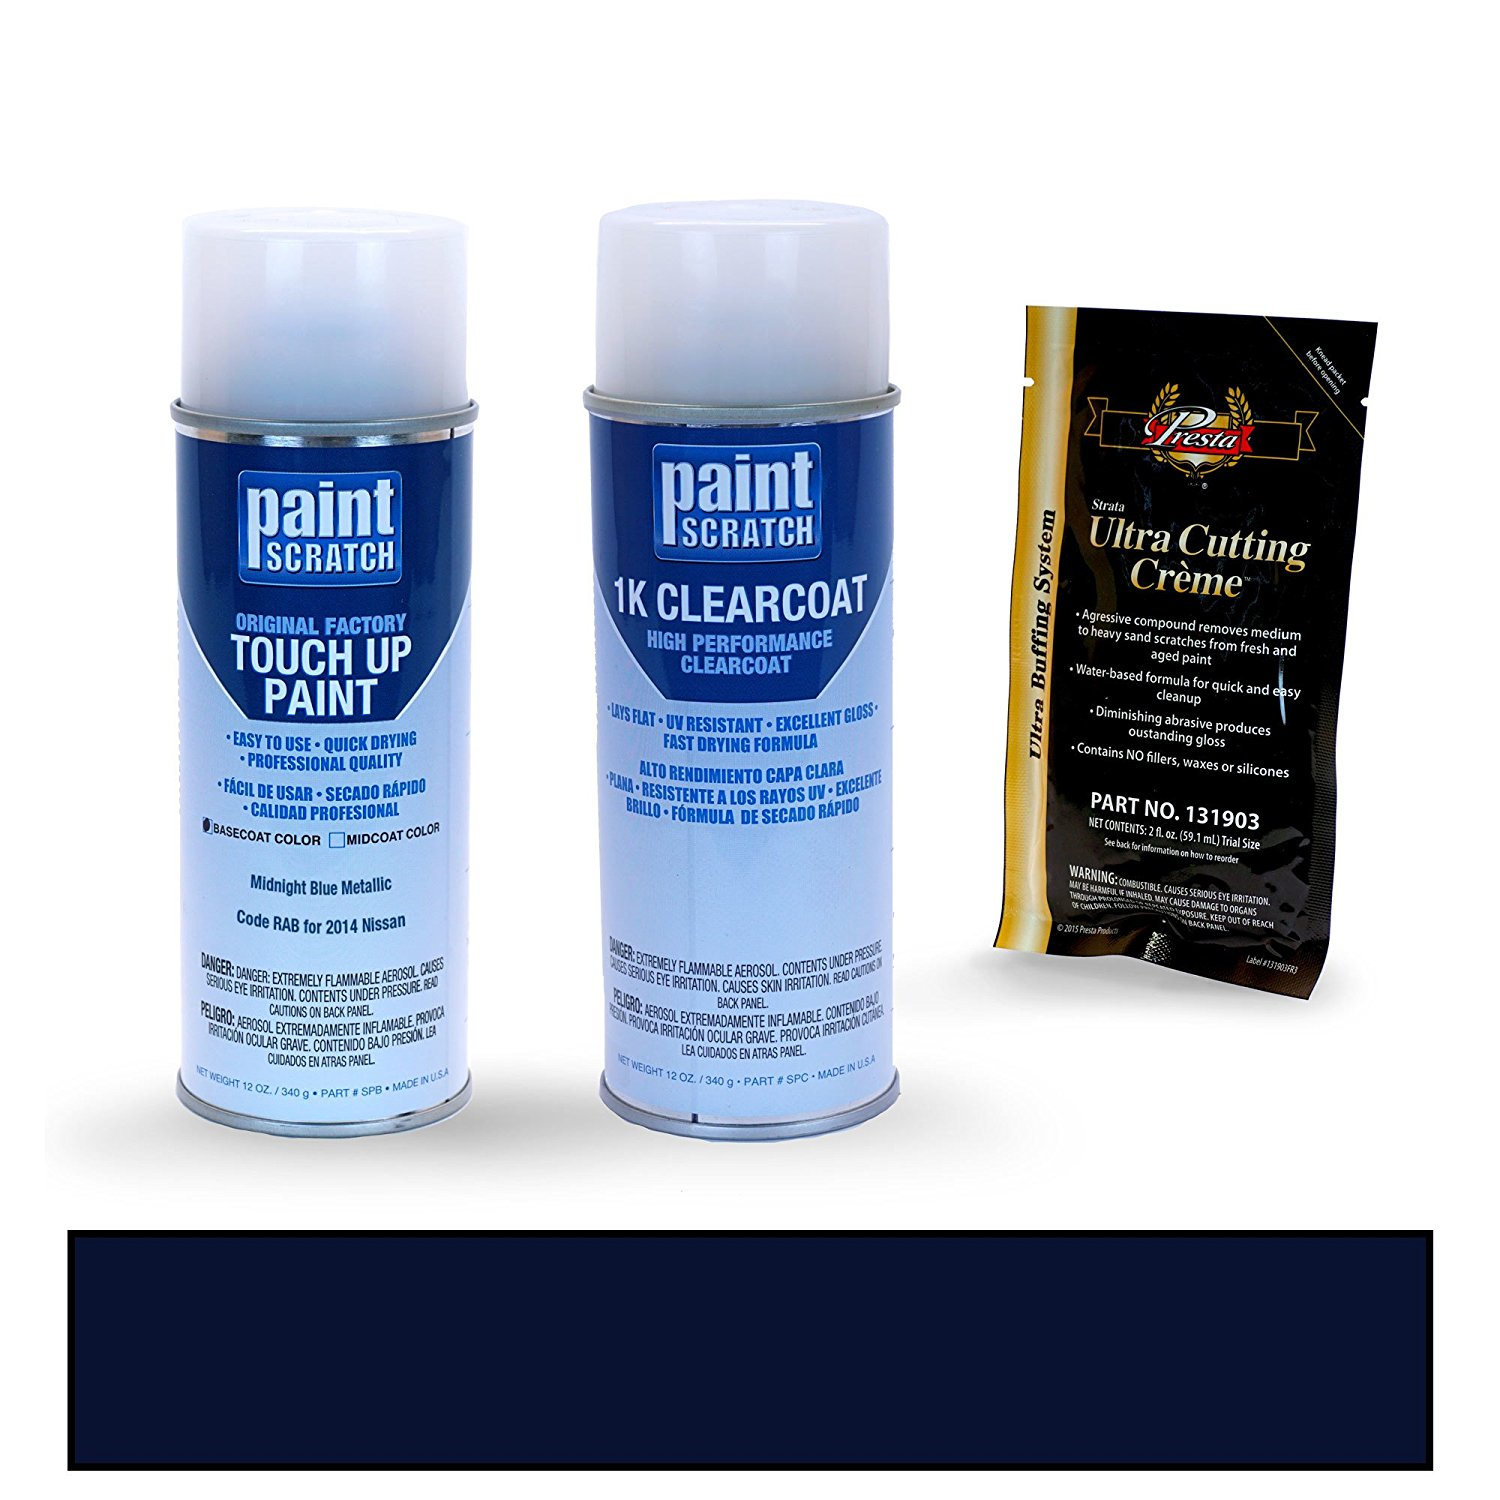 2014 Nissan Altima Midnight Blue Metallic RAB Touch Up Paint Spray Can Kit by PaintScratch - Original Factory OEM Automotive Paint - Color Match Guaranteed